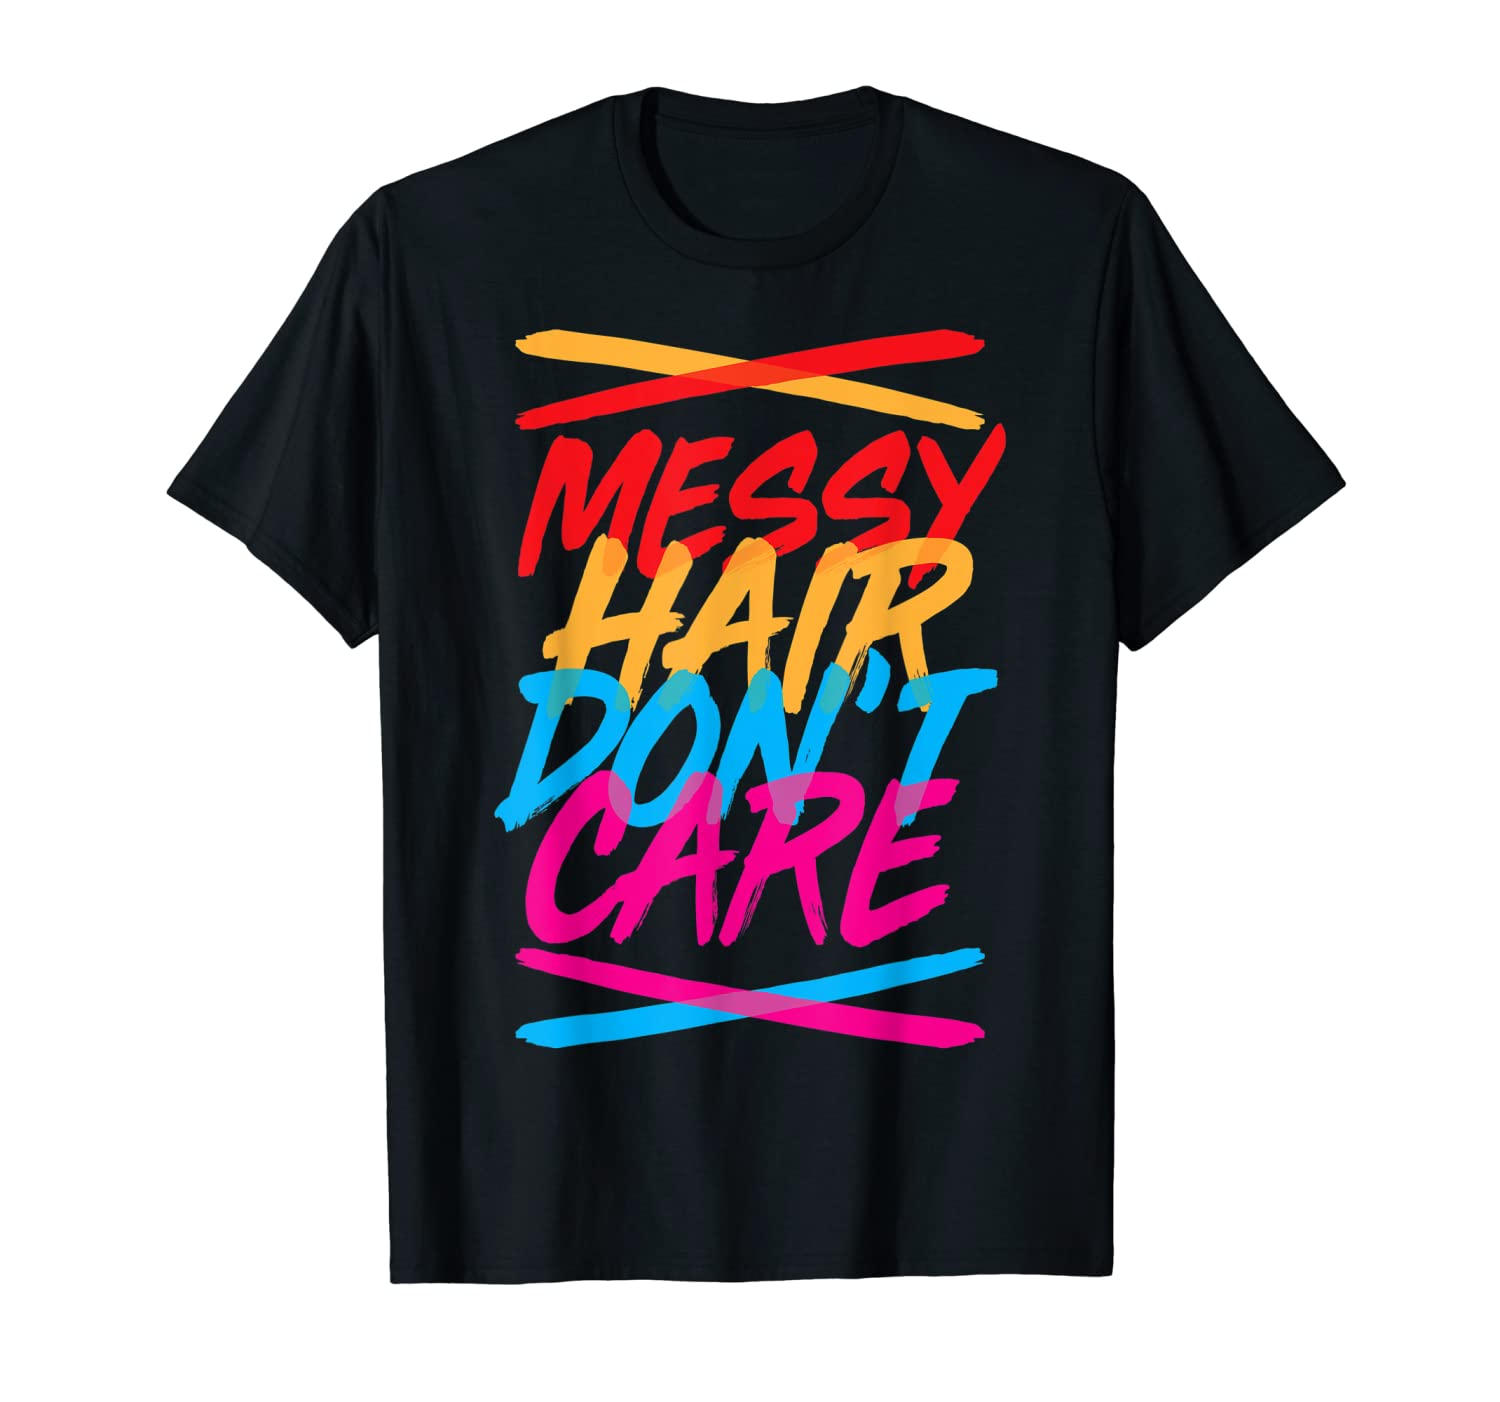 Messy Hair Shirt Messy Hair Don't Care T Shirt Gift for Kids